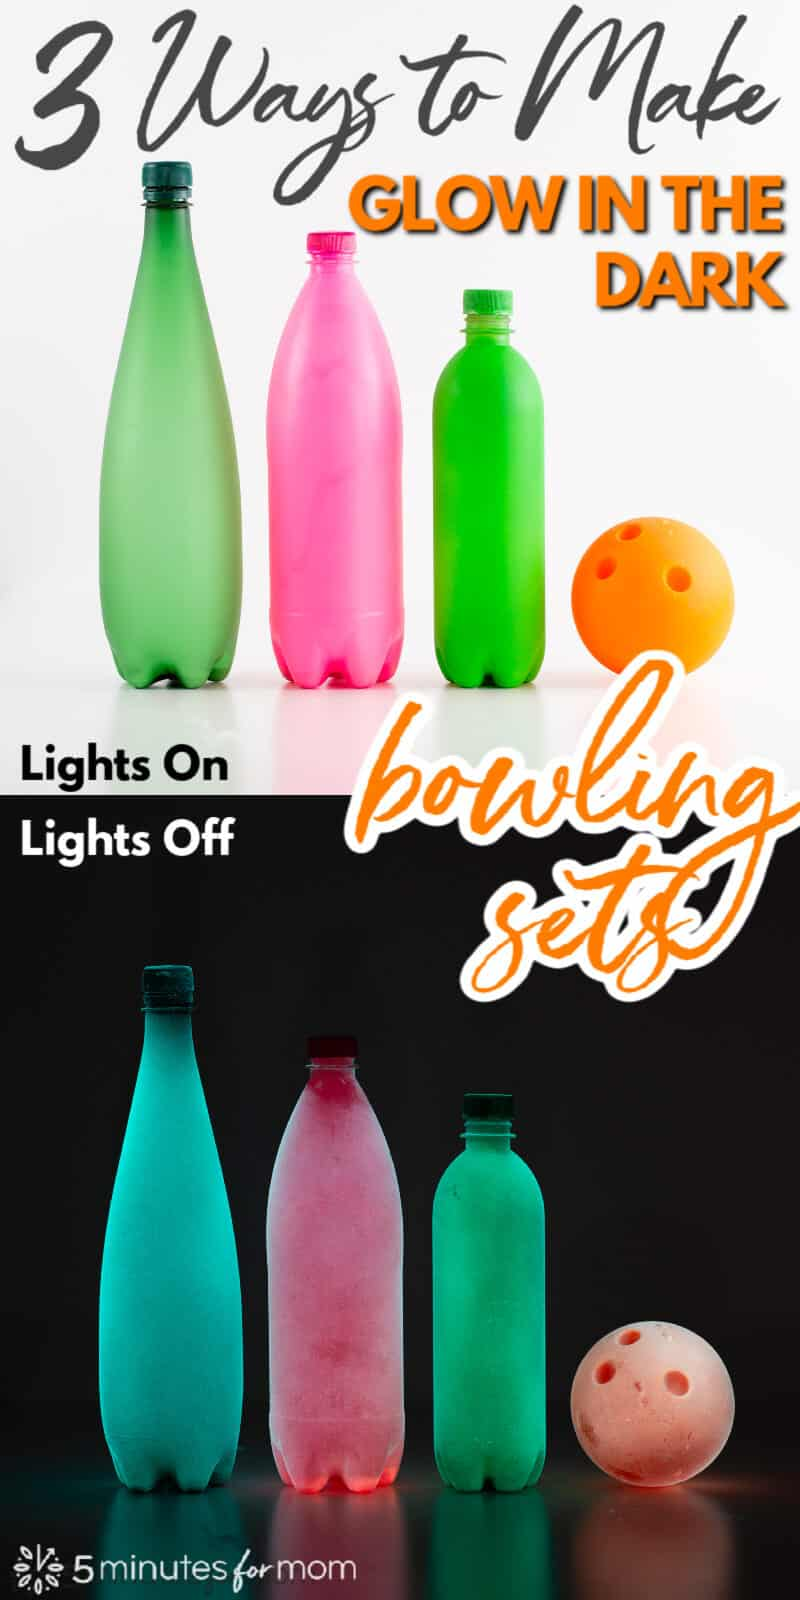 3 Ways To Make DIY Glow in the Dark Bowling Sets